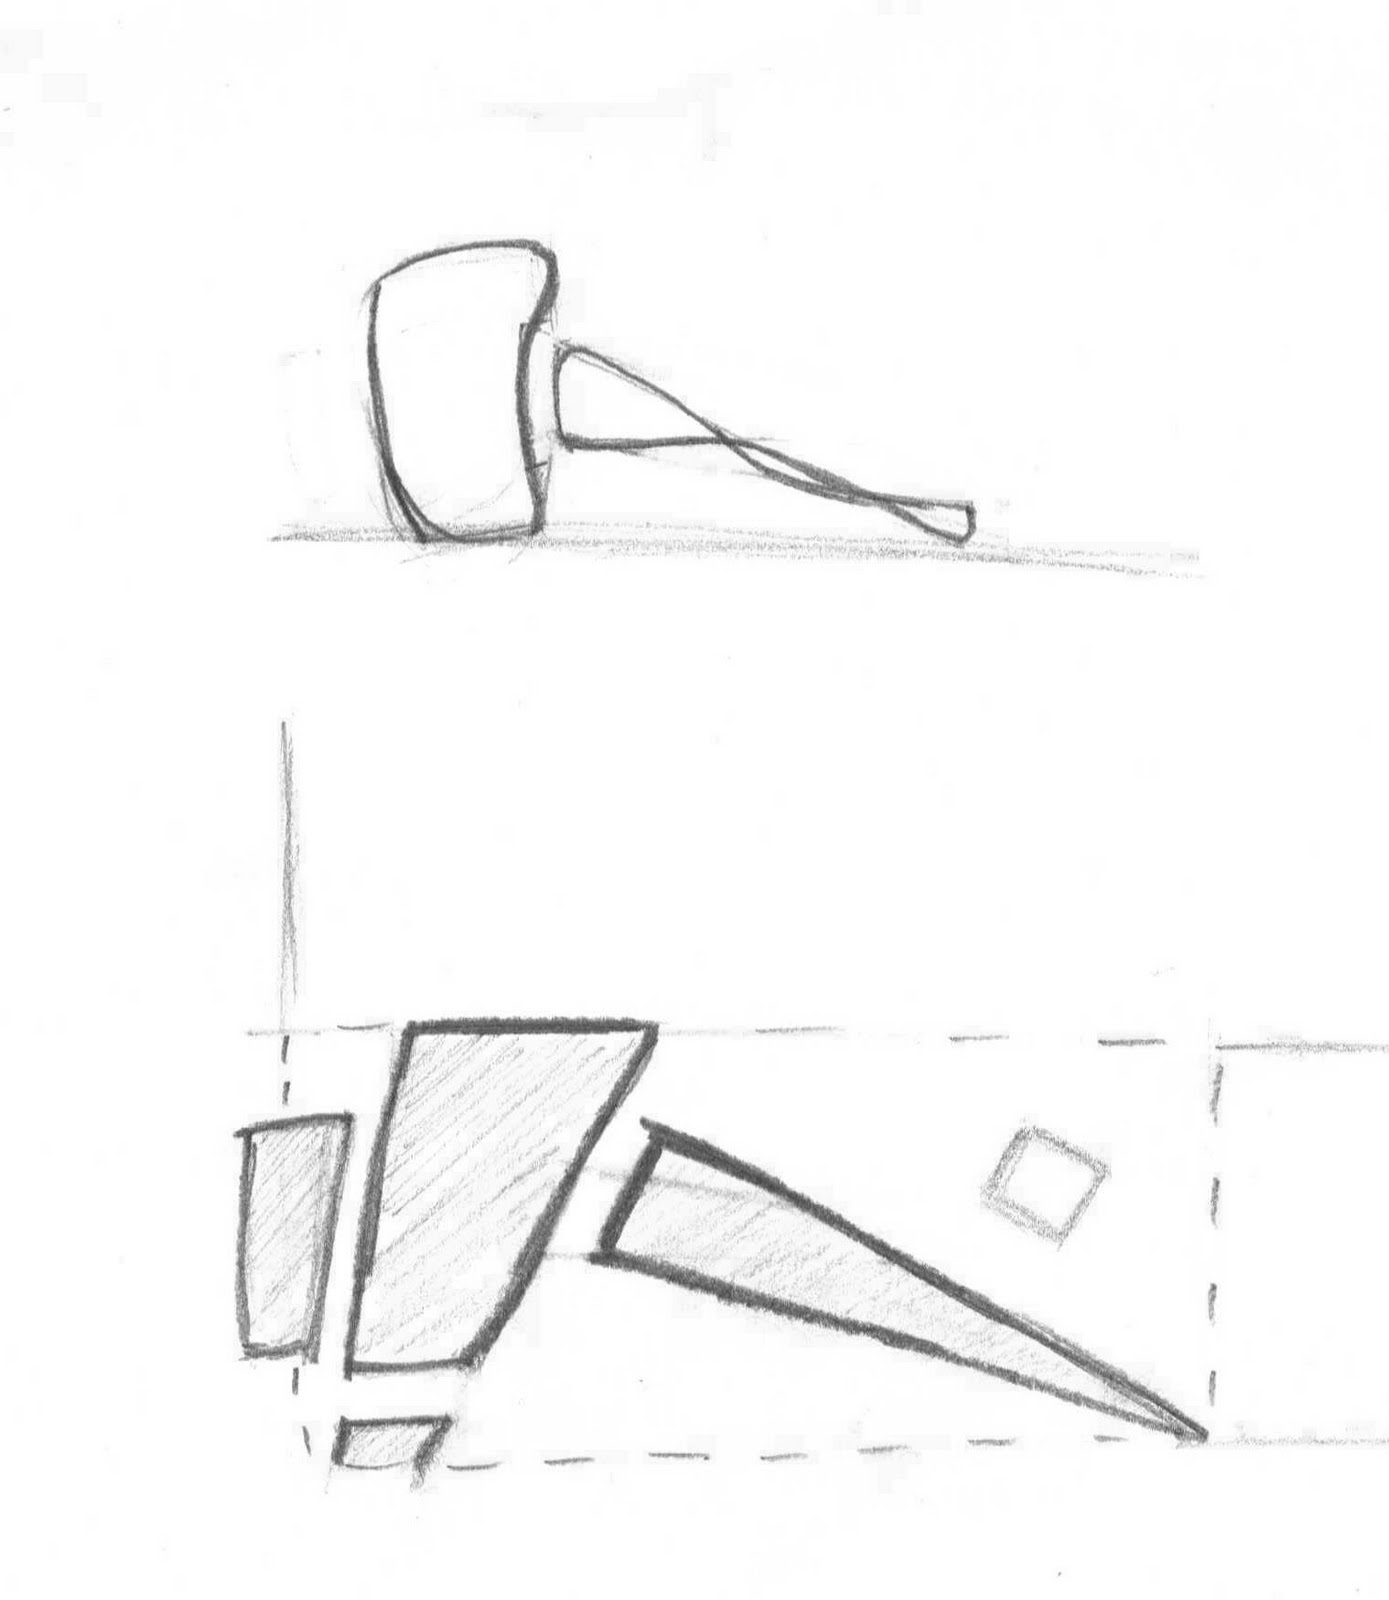 Jr Villegas Impact Raw Diagrams Sketches